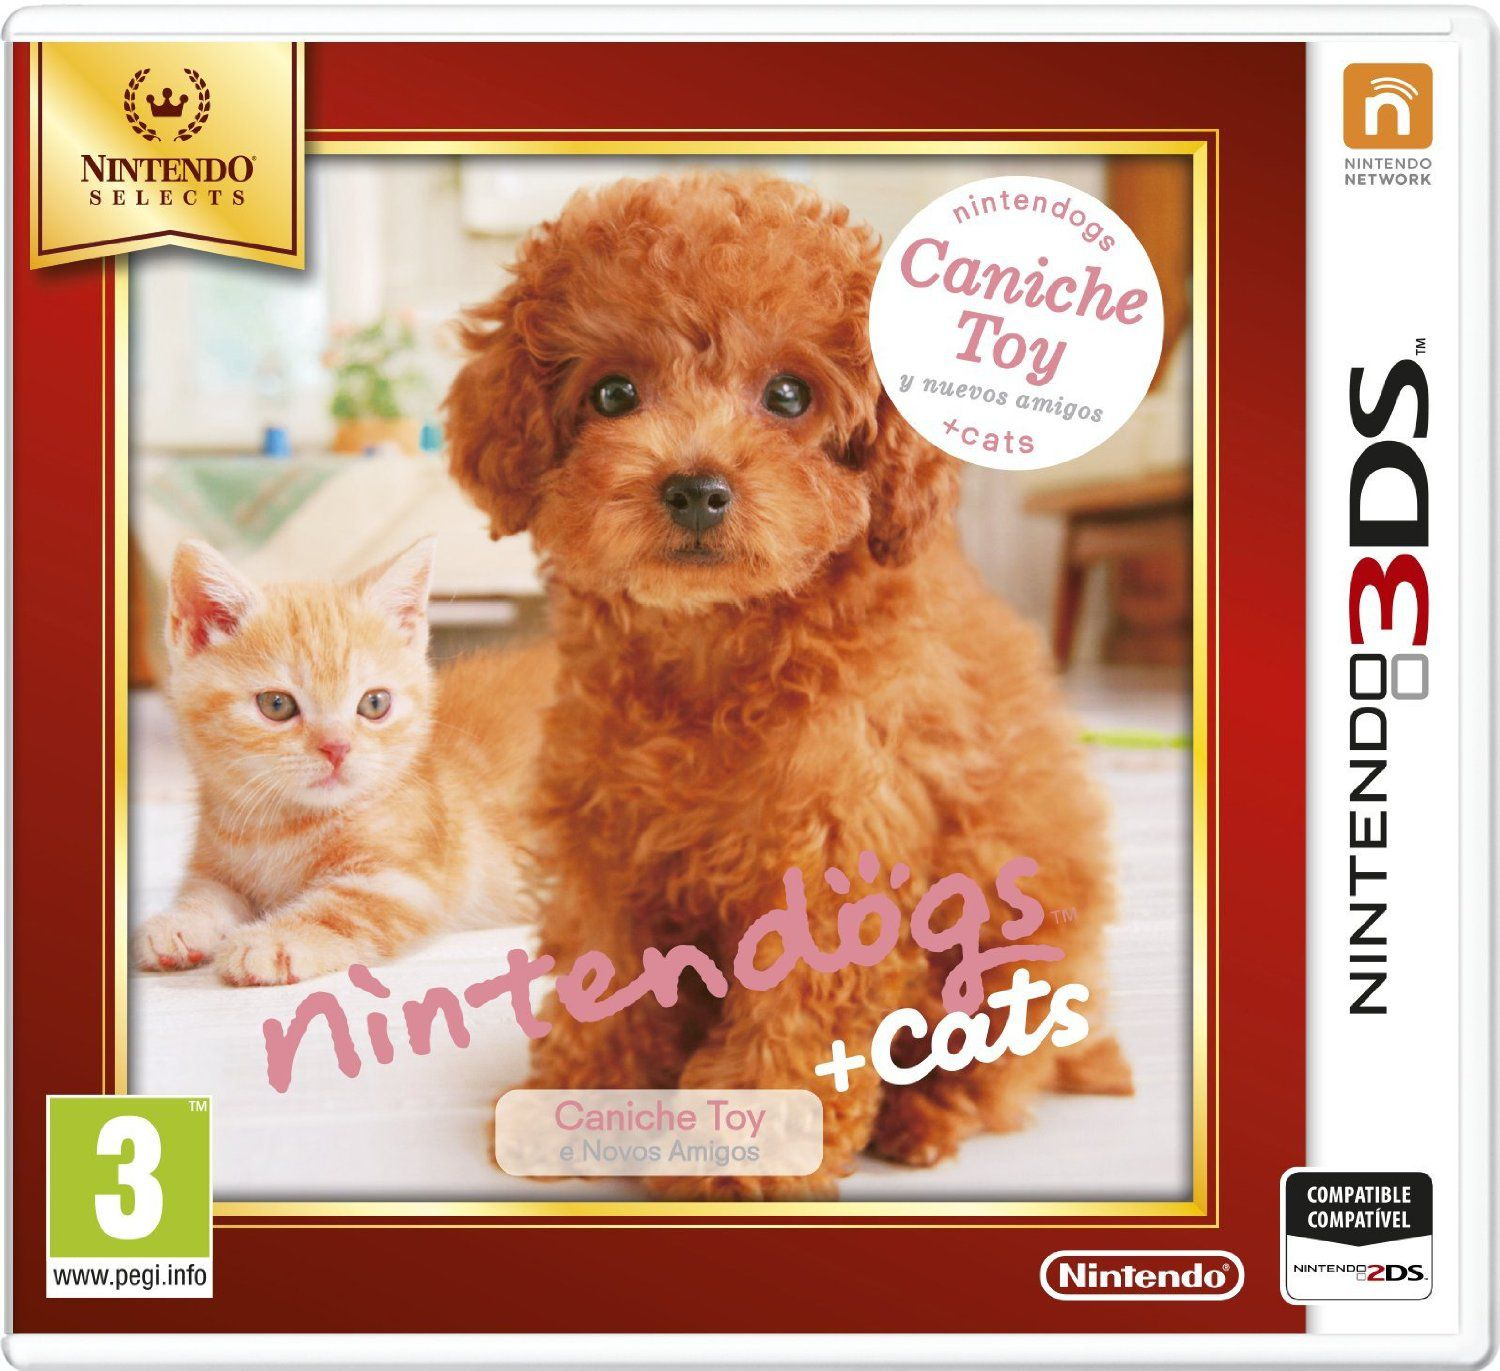 Ver Nintendogs Gatos Caniche Selects 3Ds